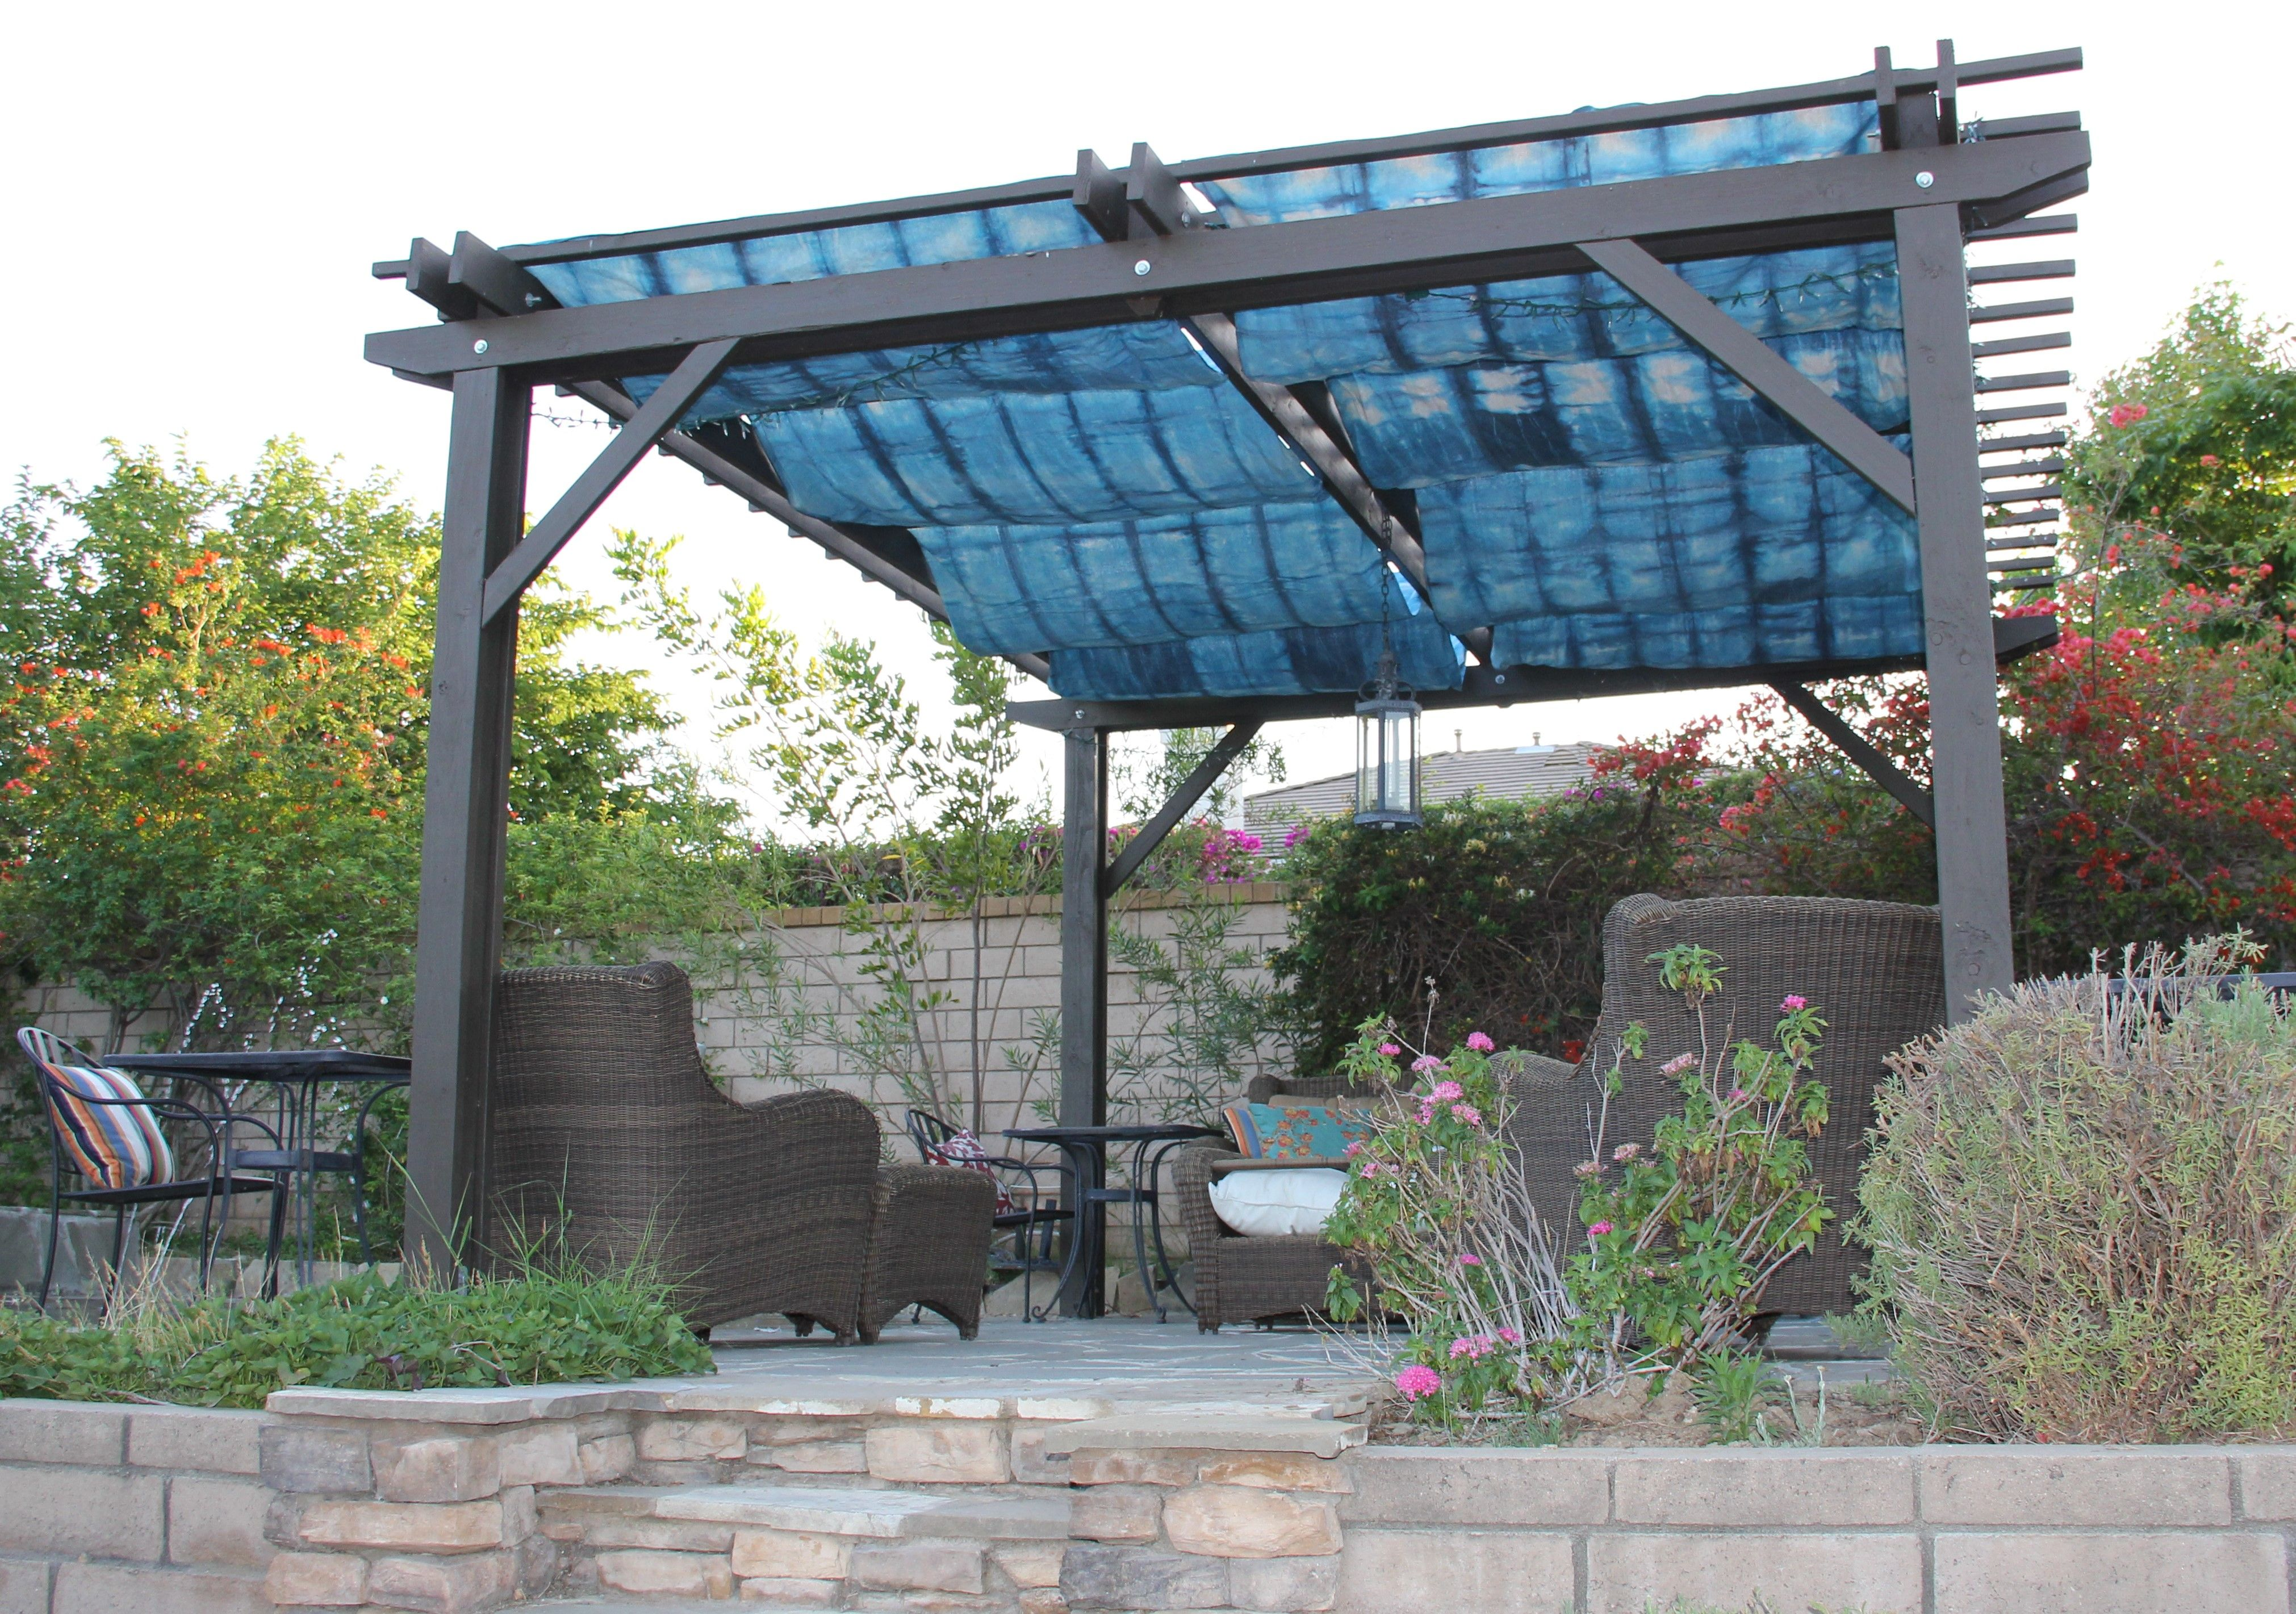 Roof Design Ideas: $40 Plus Dye- DIY Pergola Cover With Rit And Home Depot